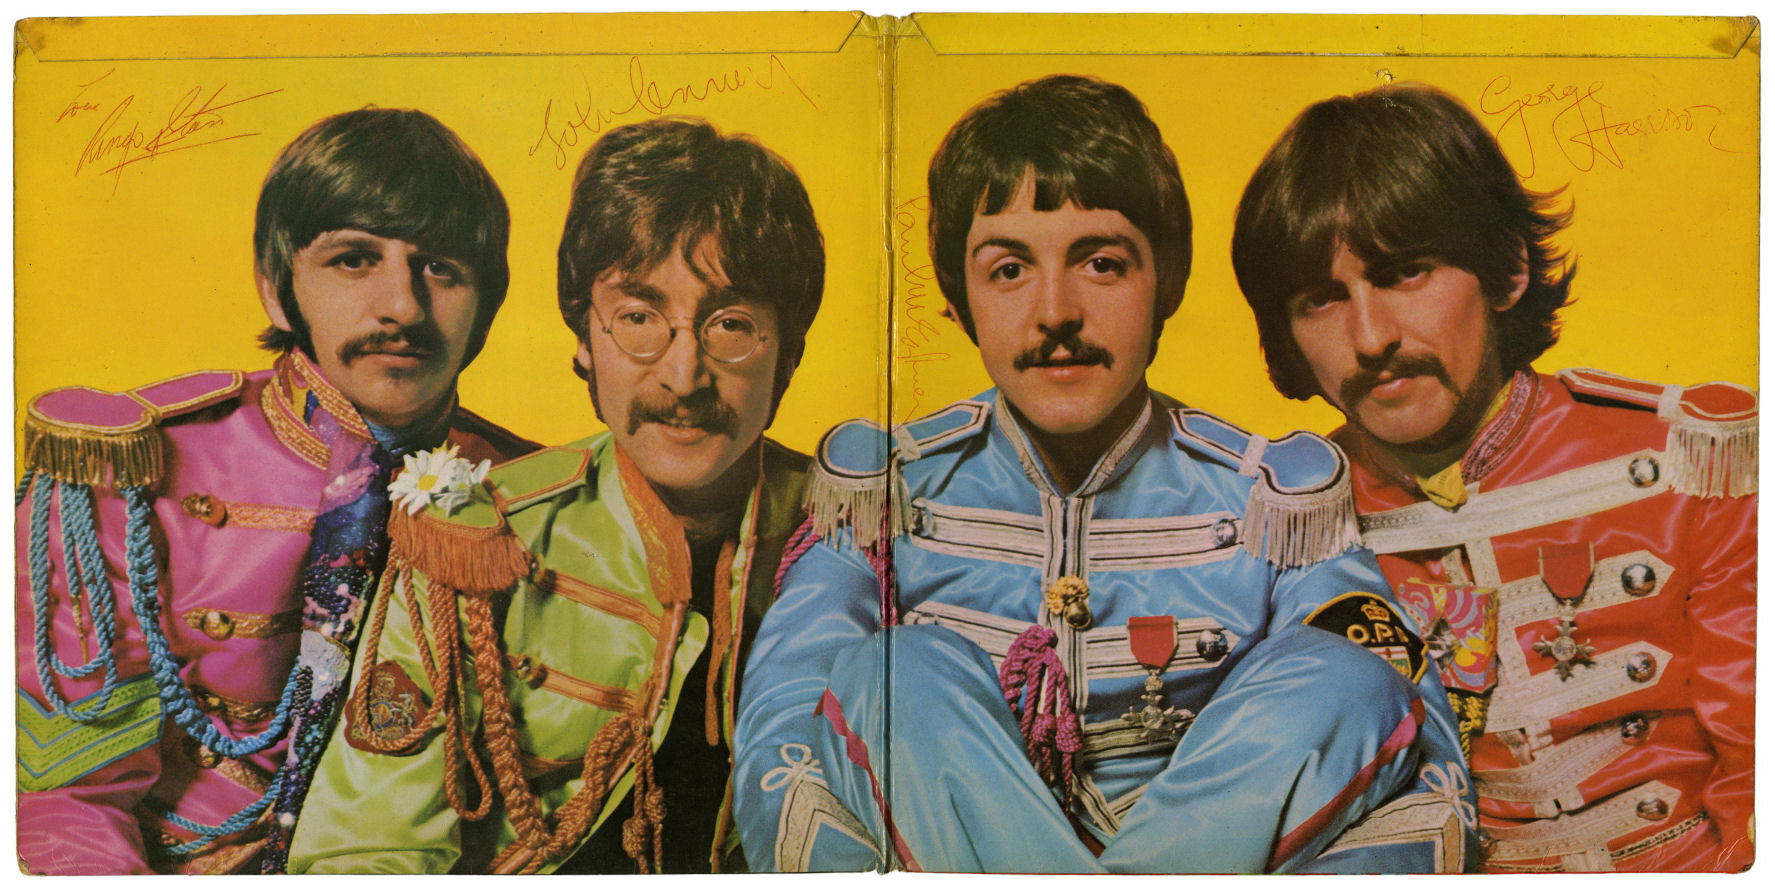 Uk S Based Memorabilia Dealers On The Search For Beatles